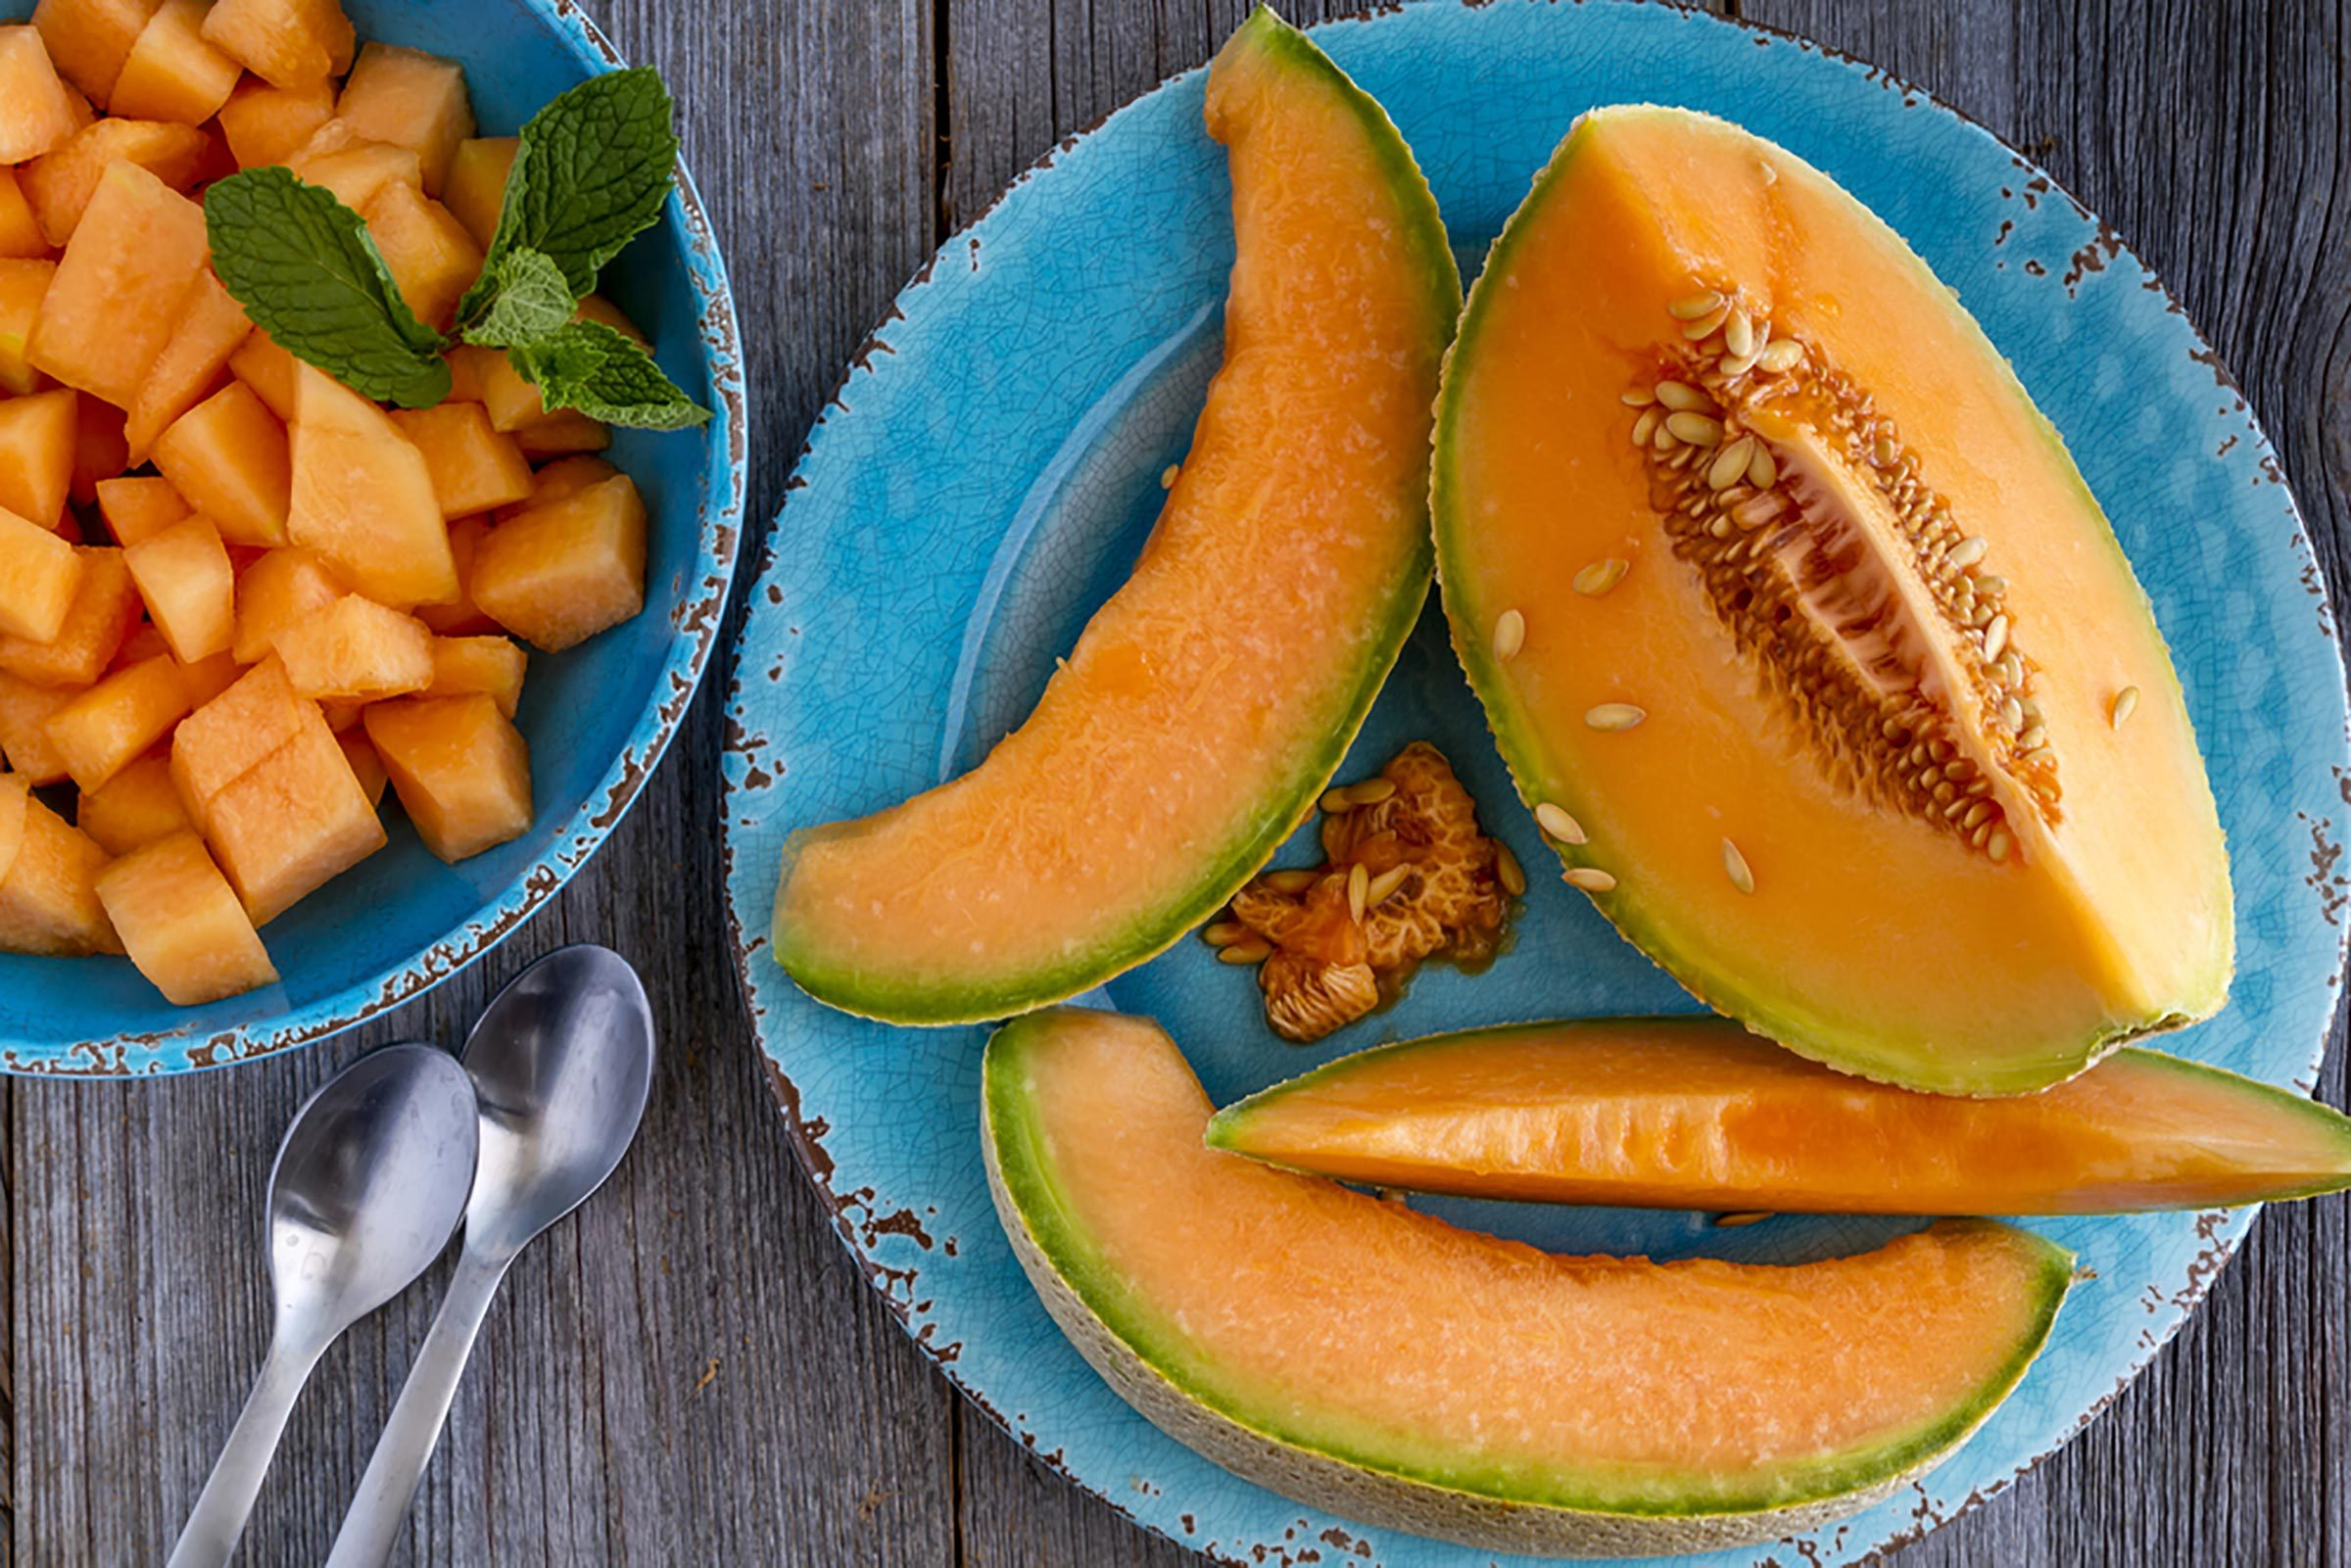 Cantaloupe Healthy : The humble cantaloupe may not get as much respect as other fruits, but it should.